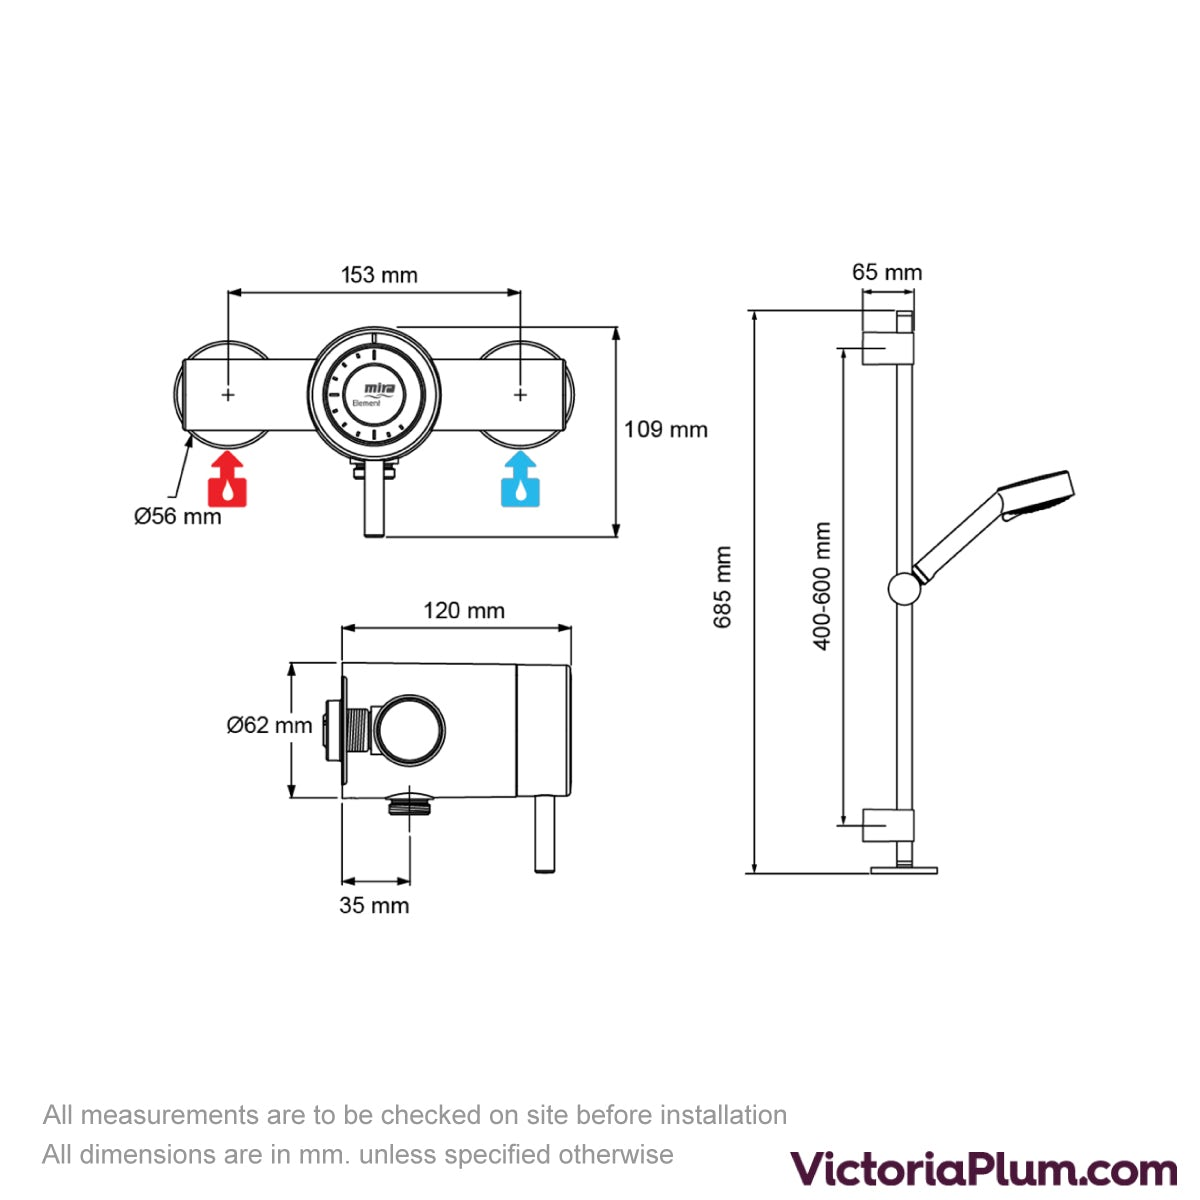 Dimensions for Mira Element SLT EV thermostatic mixer shower